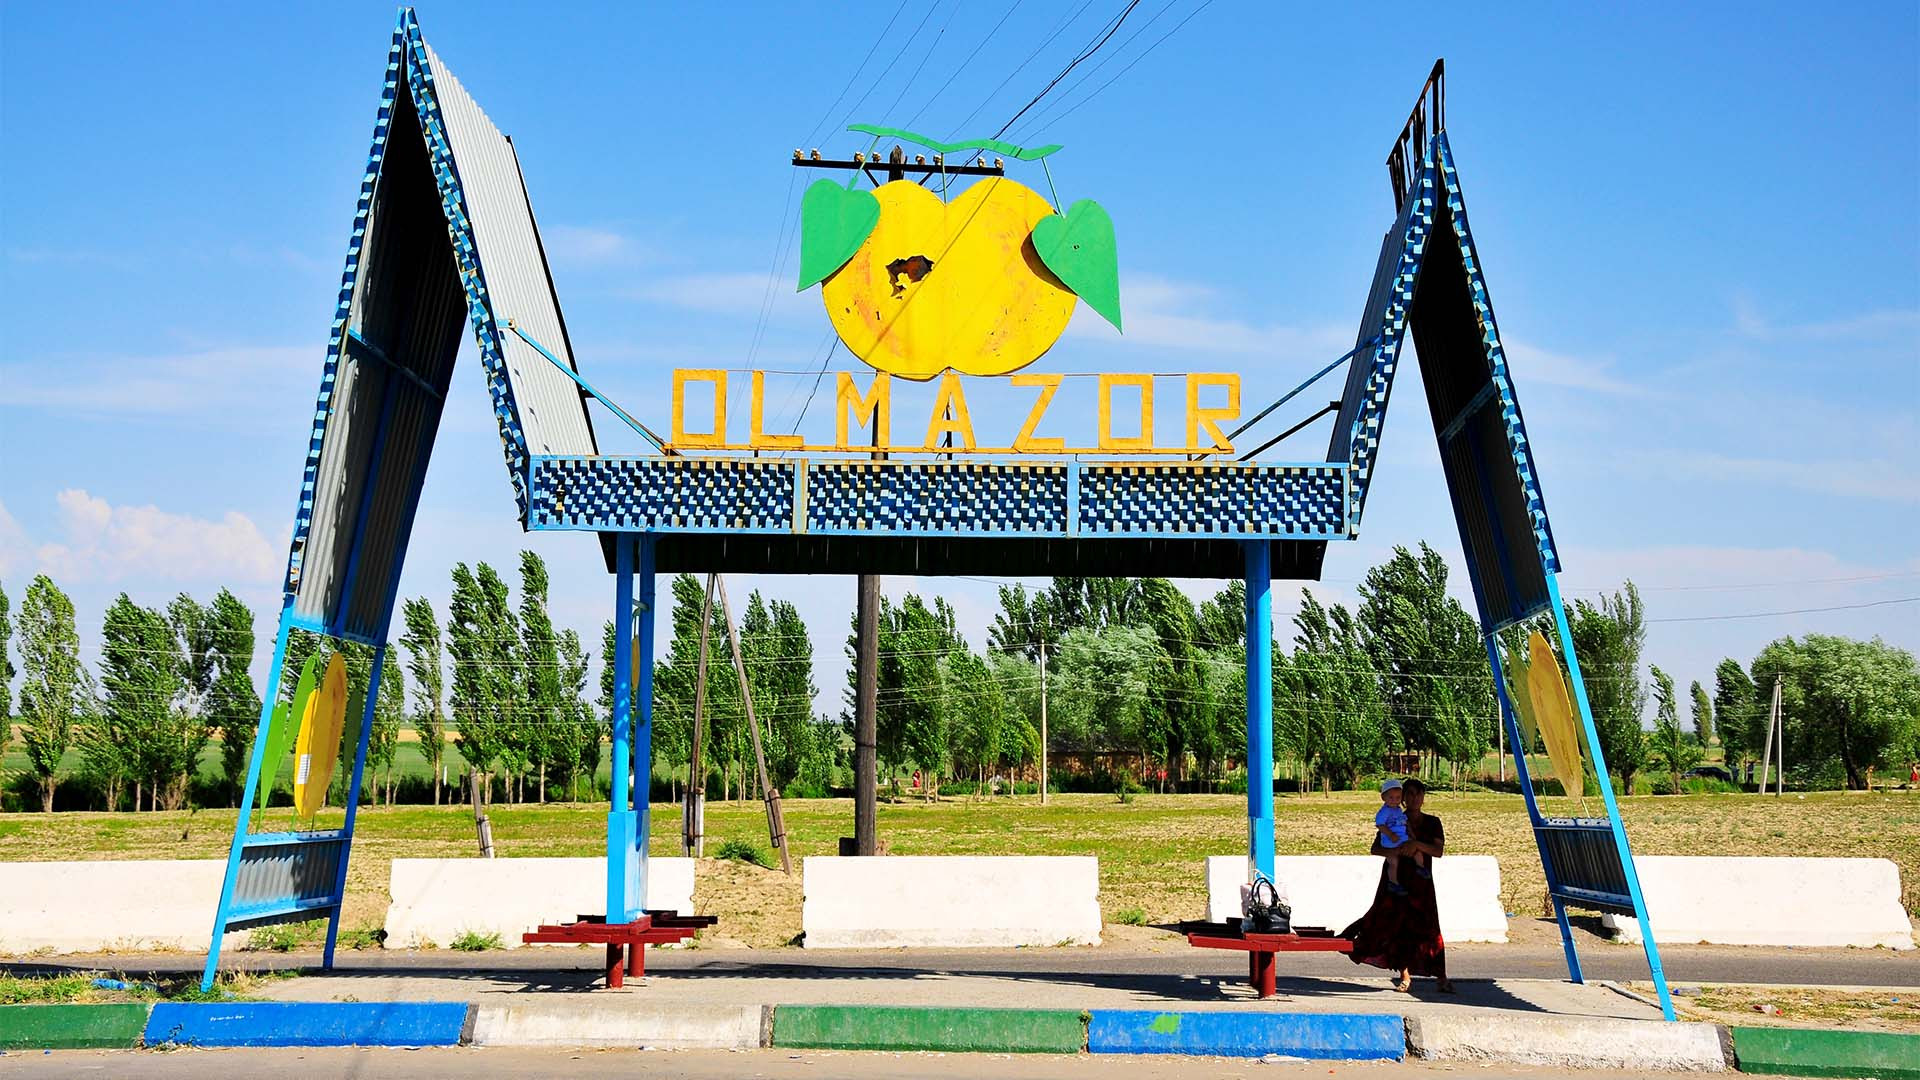 Dual triangle bus stop in Uzbekistan with lemon advertisment